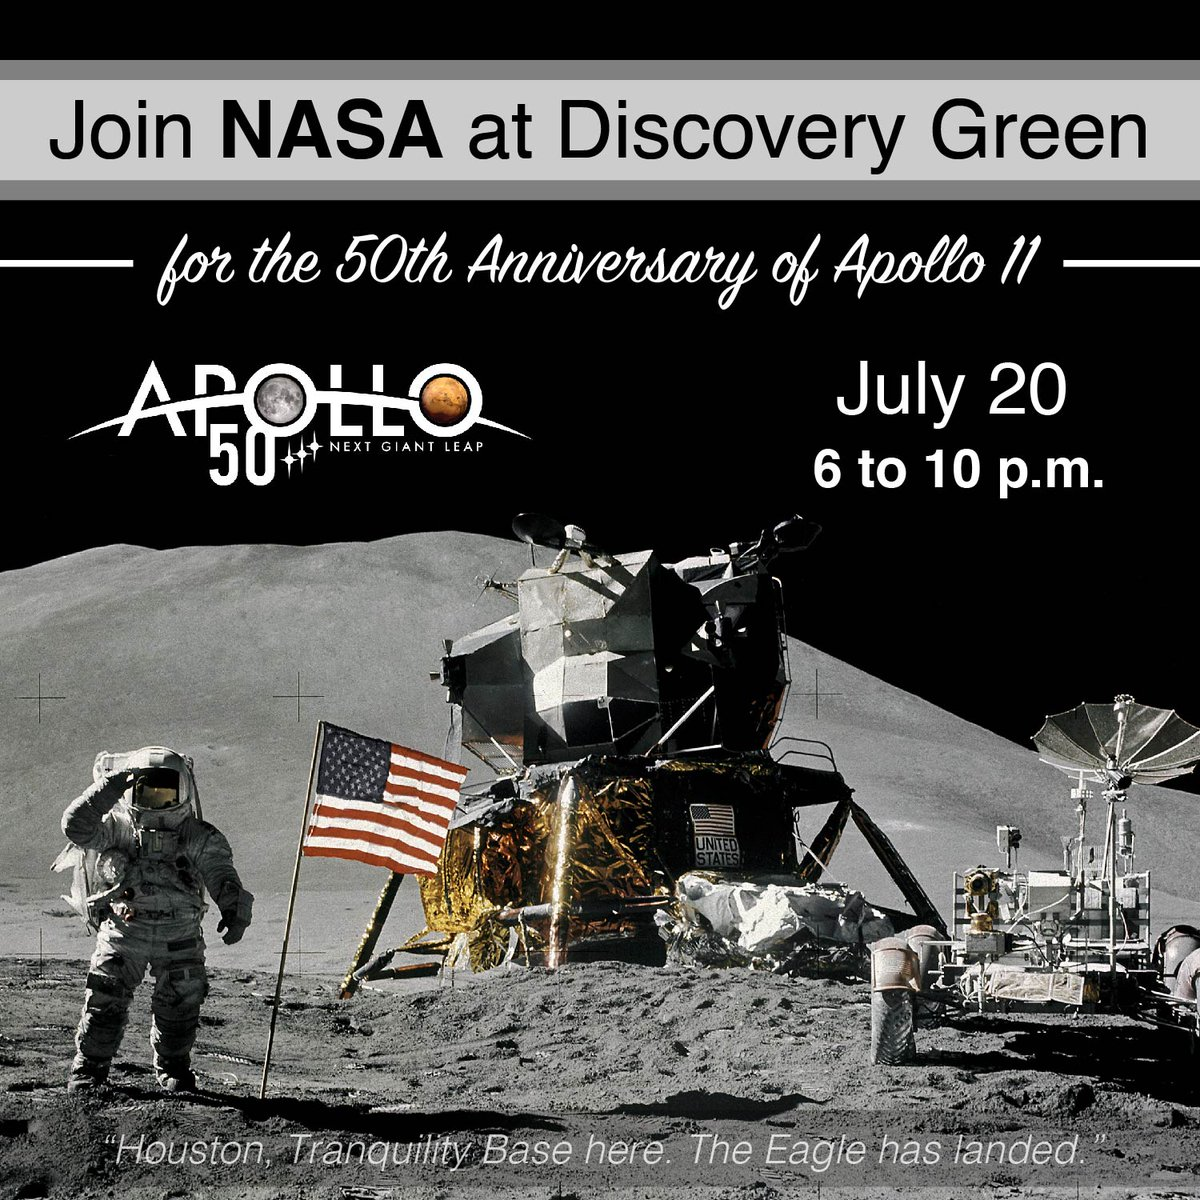 TOMORROW, July 20: Houston, celebrate #Apollo11 with us at @DiscoveryGreen! 🚀 Visit our Driven to Explore trailer, participate in @NASASTEM activities & more. Later, watch Apollo 11 & count down to the first step on the Moon 50 years ago. discoverygreen.com/moonlanding #Apollo50th